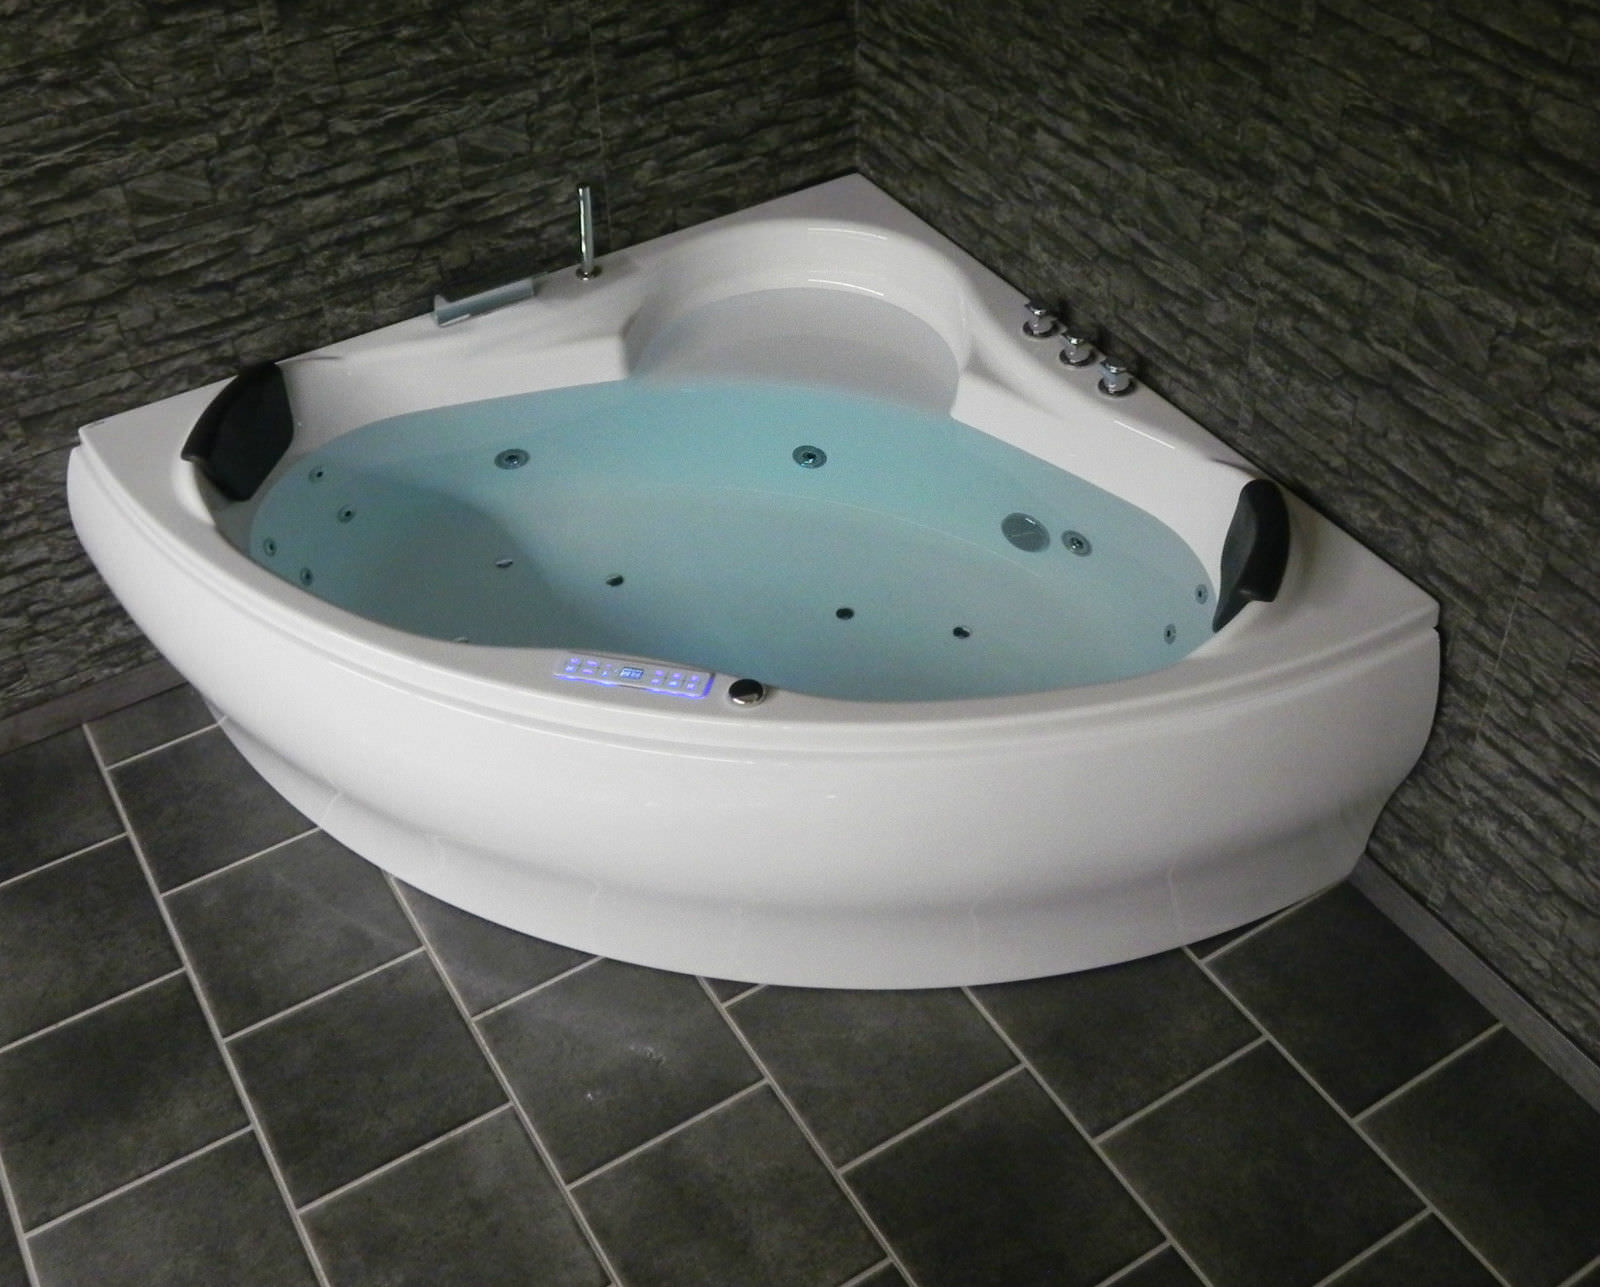 luxus time sanitary ware whirlpool badewanne dina made in germany. Black Bedroom Furniture Sets. Home Design Ideas